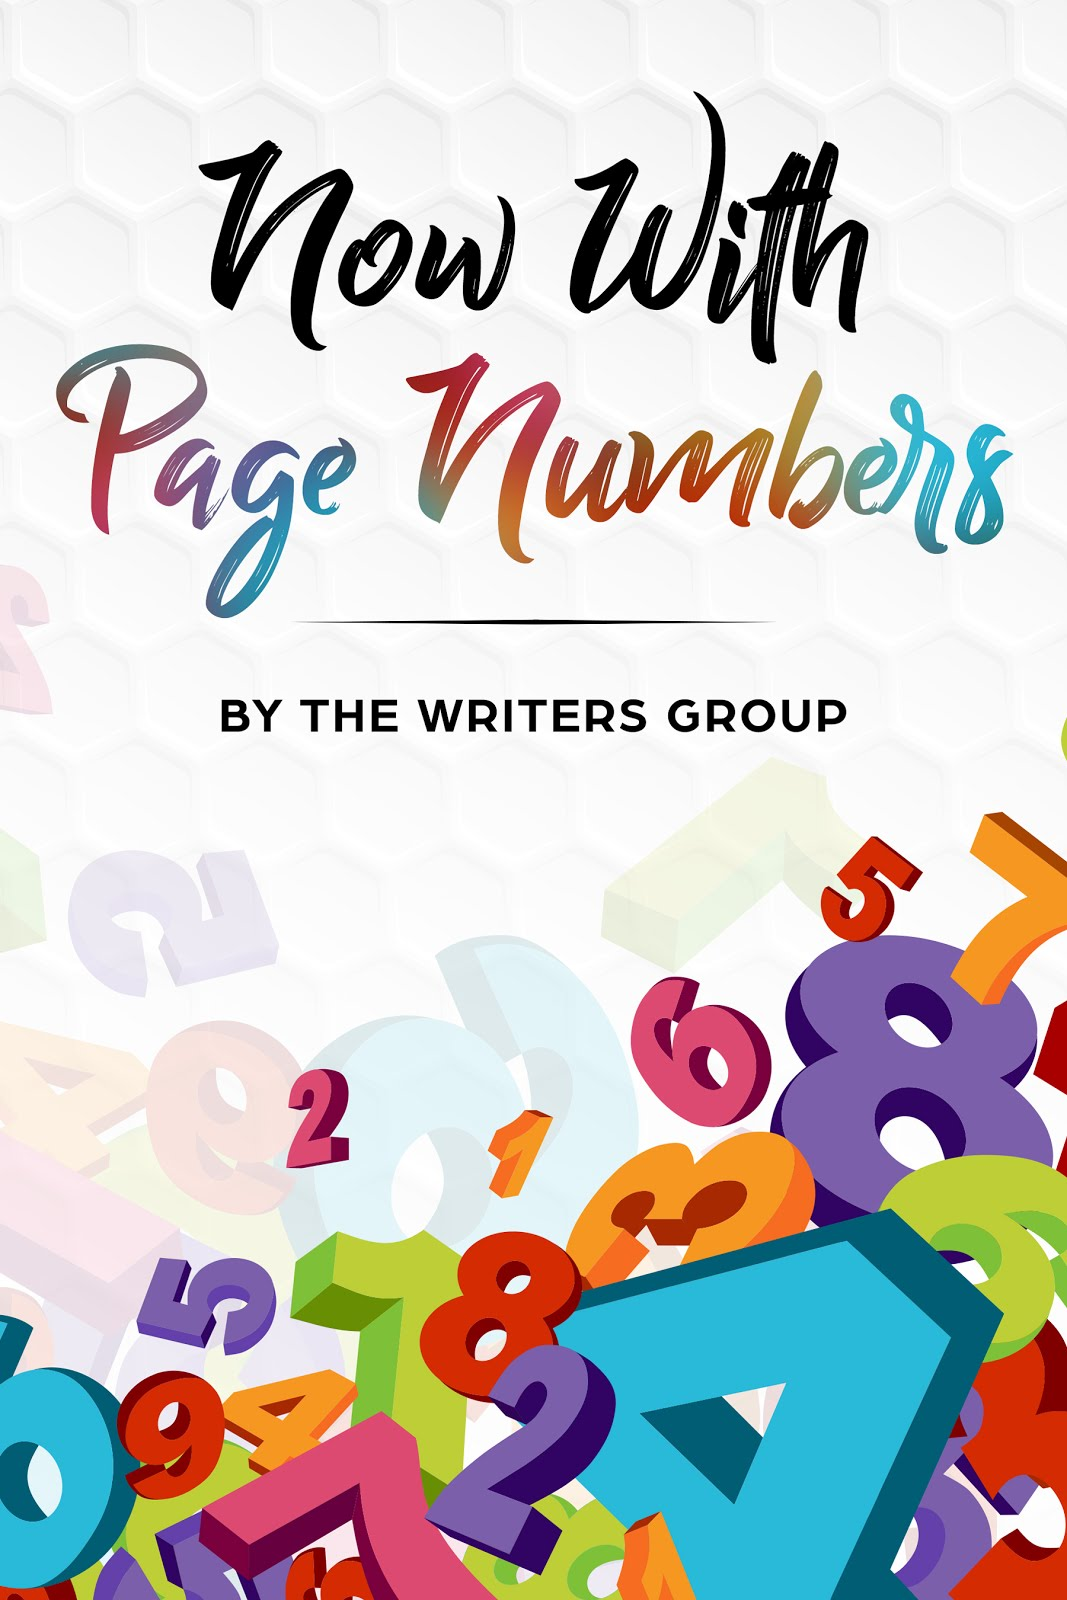 """Now With Page Numbers"" By The Writers Group (3rd Anthology)"